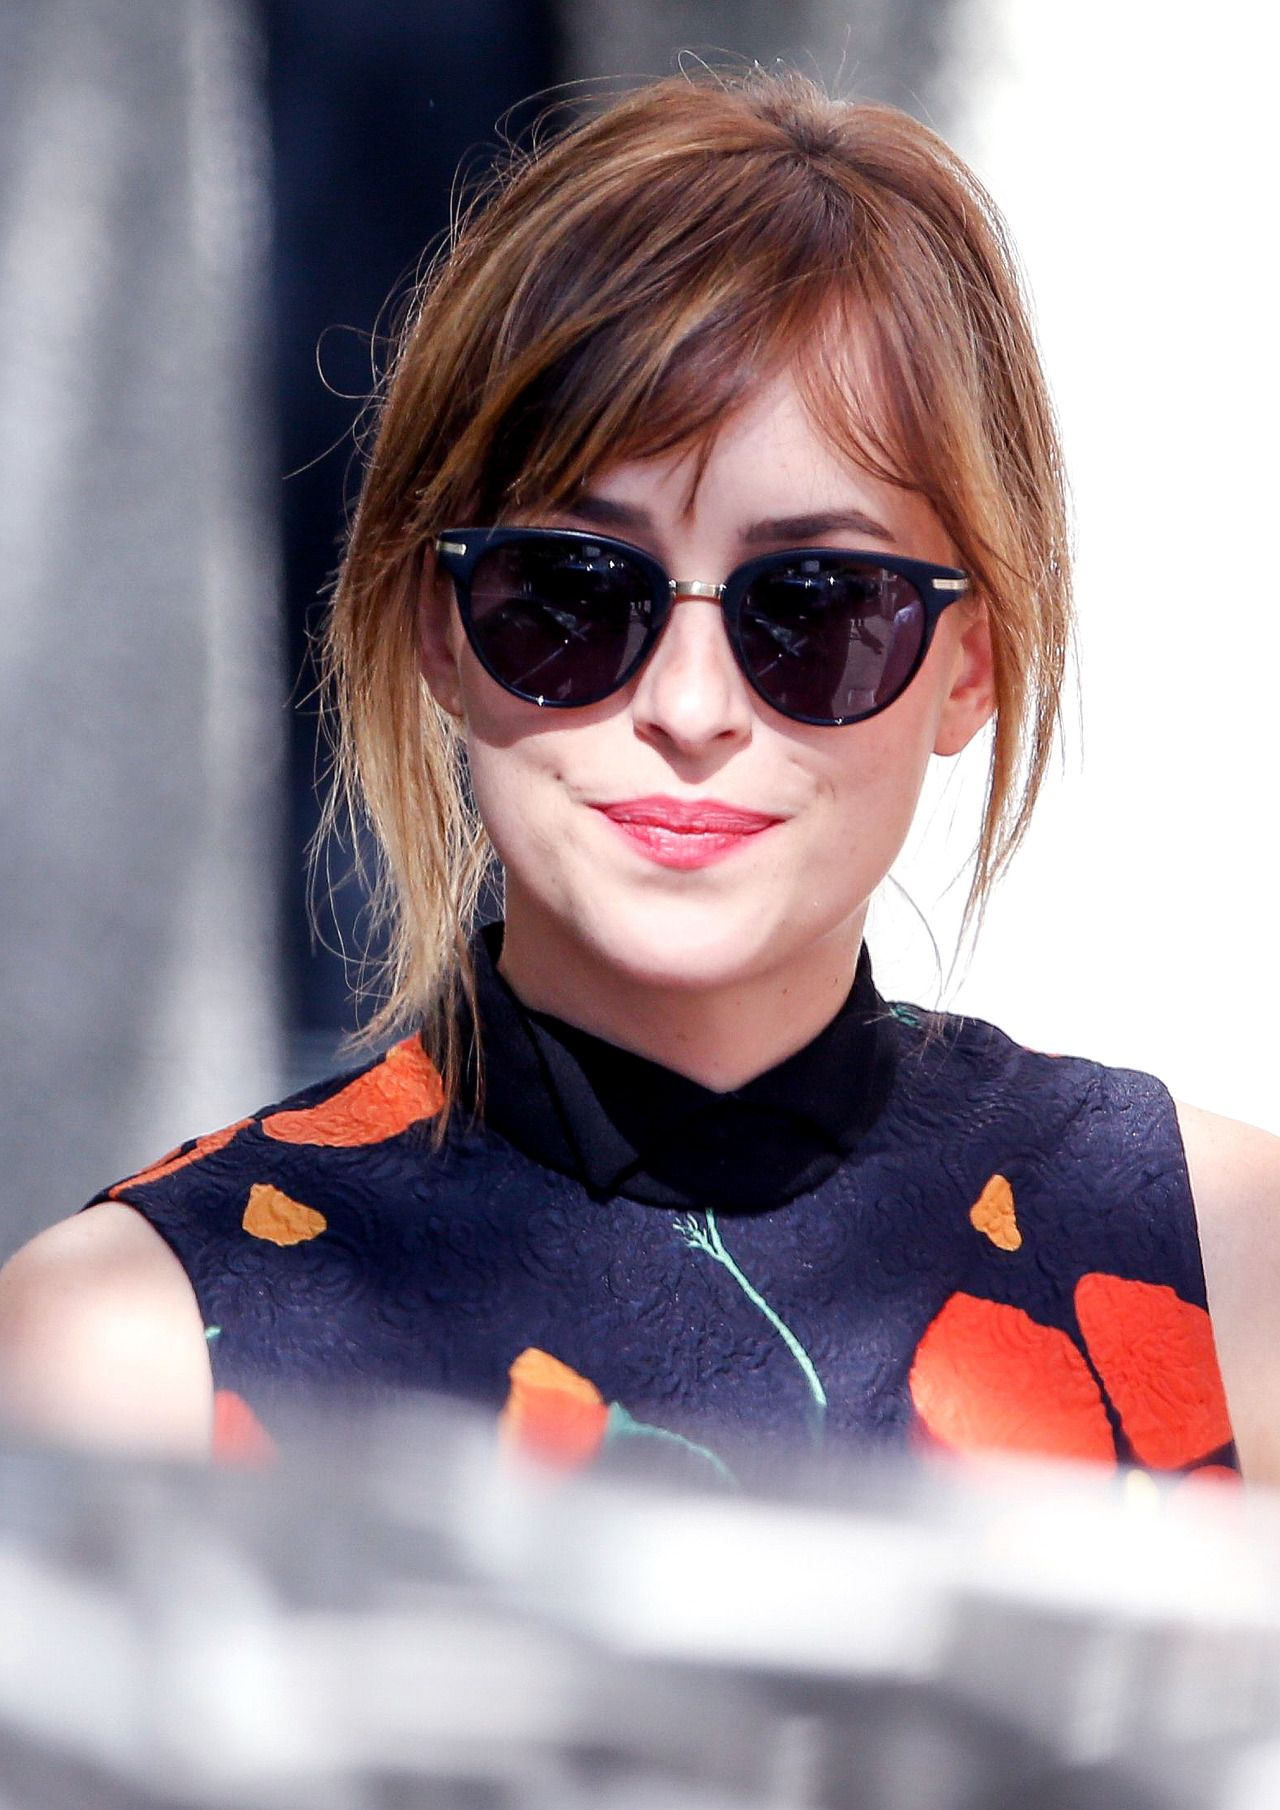 Dakota Johnson at the A Bigger Splash press conference photo call in